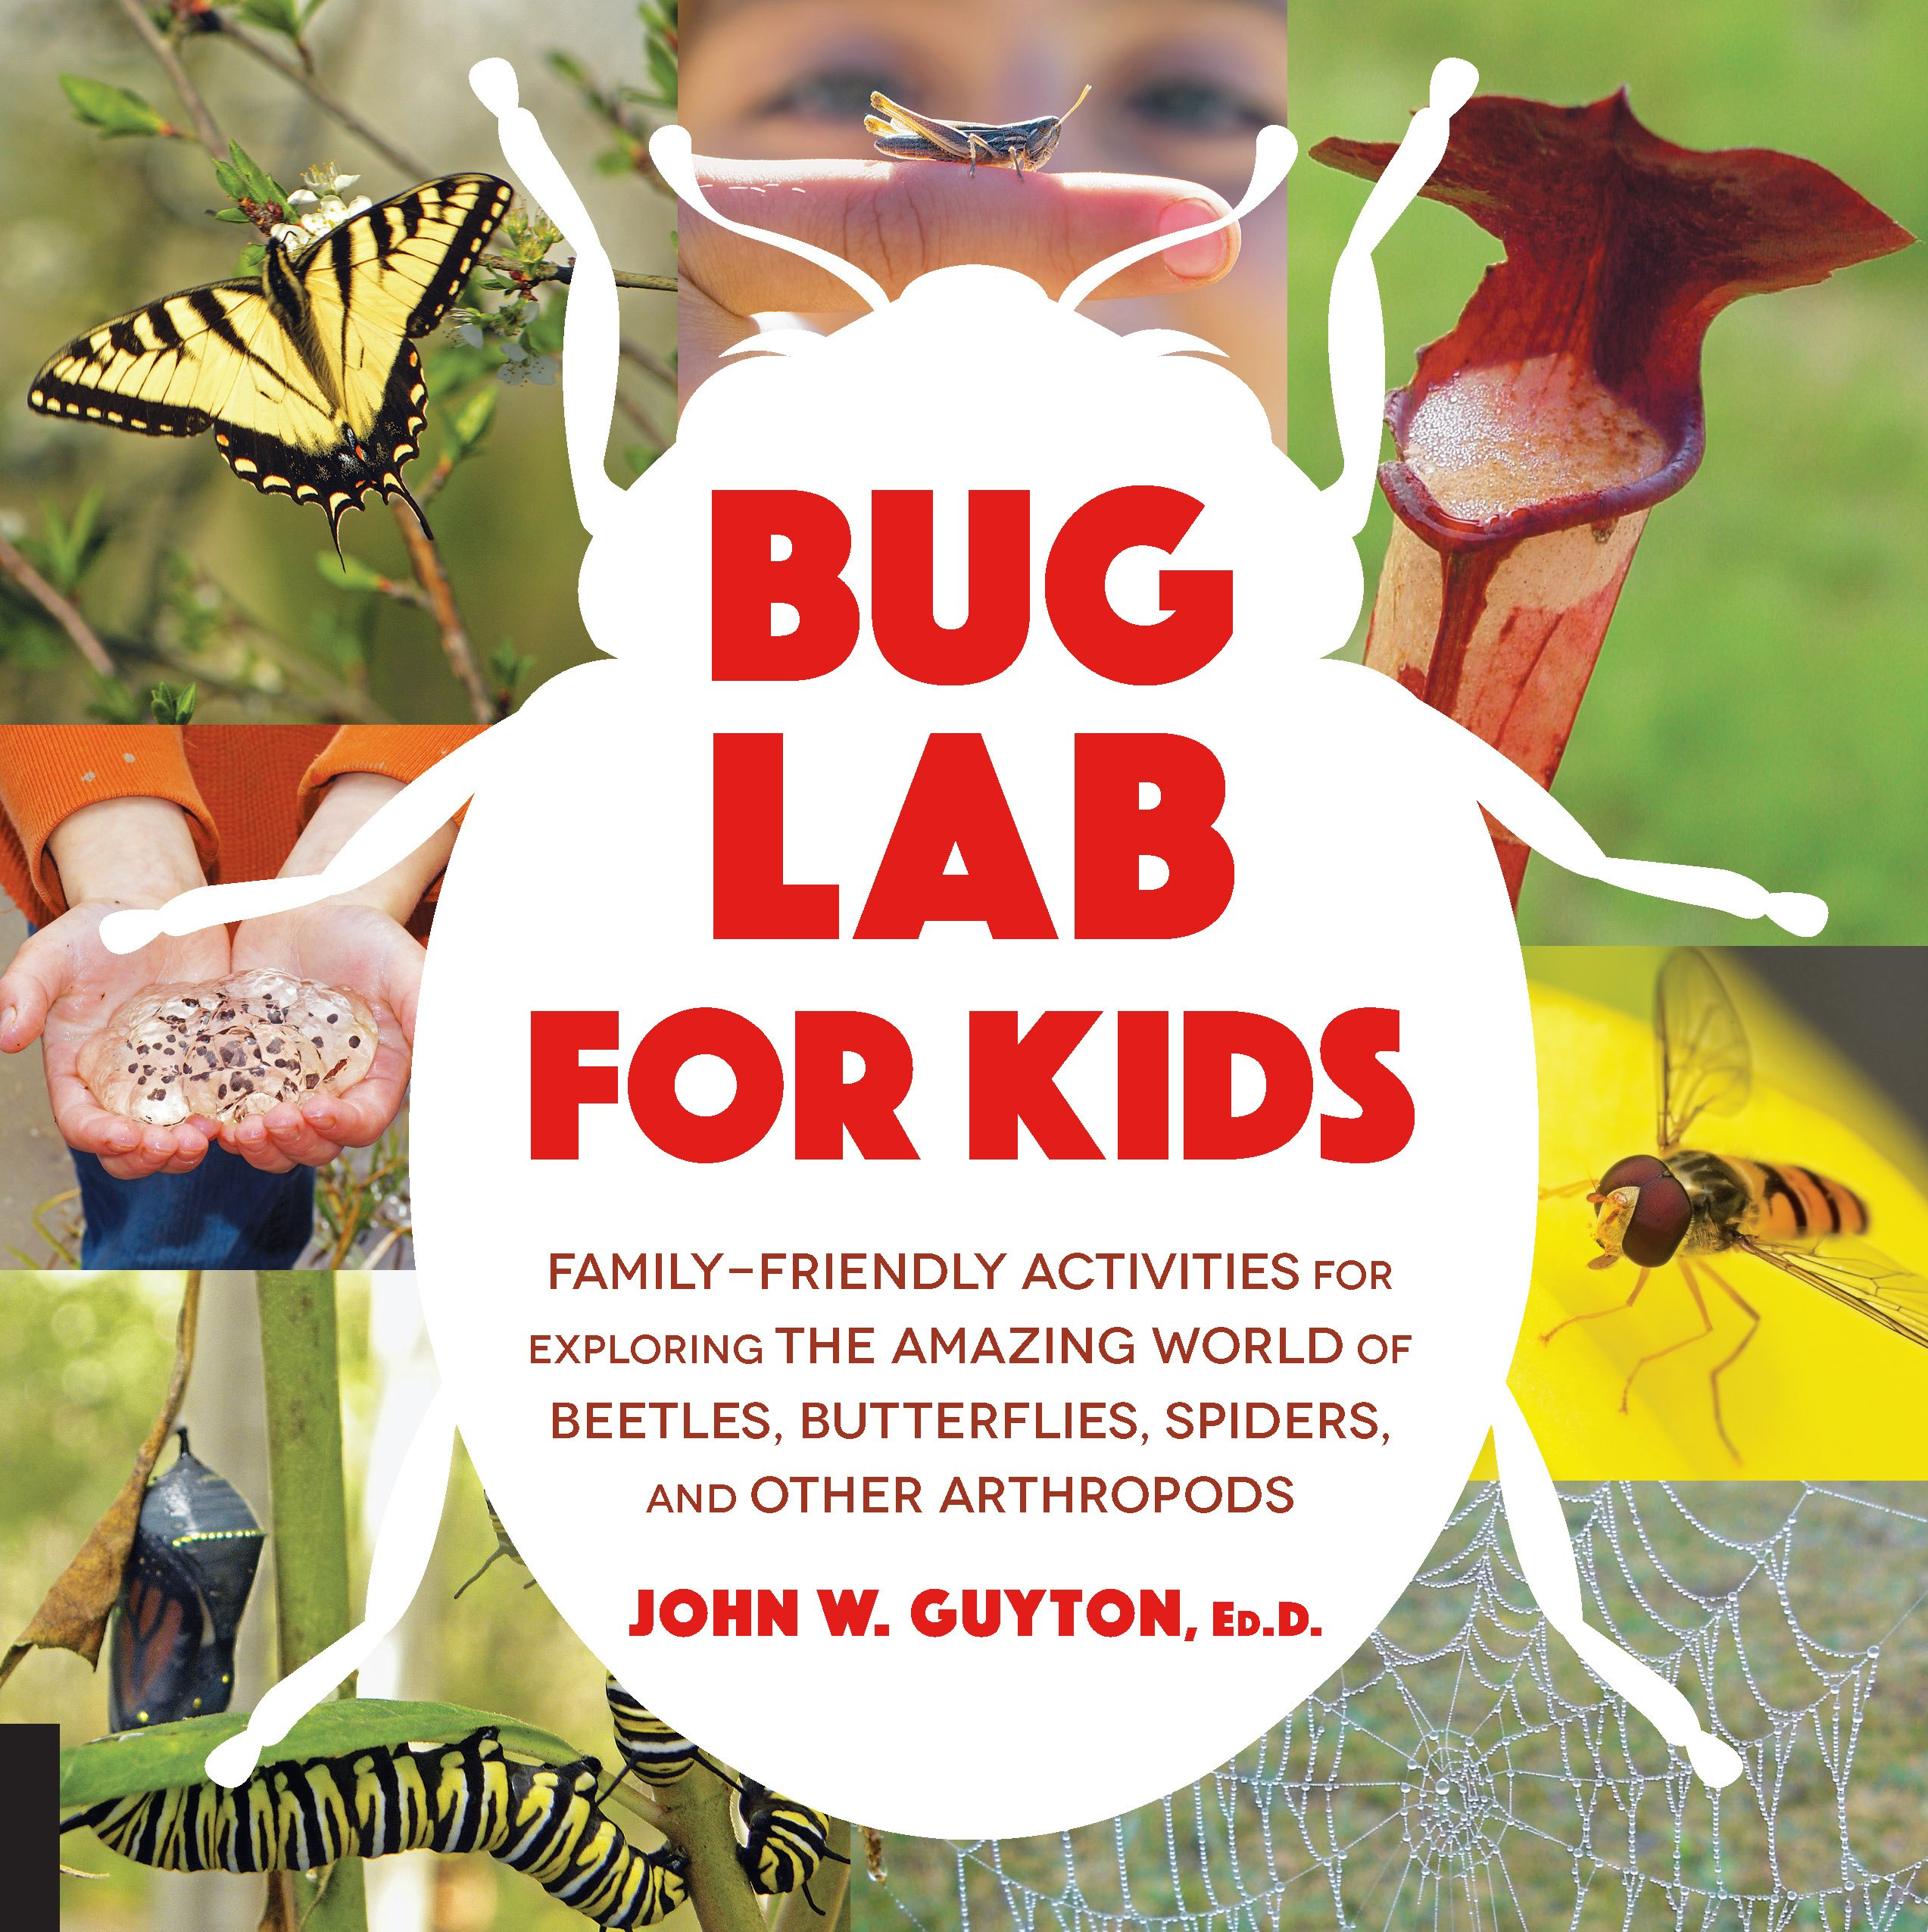 Bug Lab for Kids: Family-Friendly Activities for Exploring